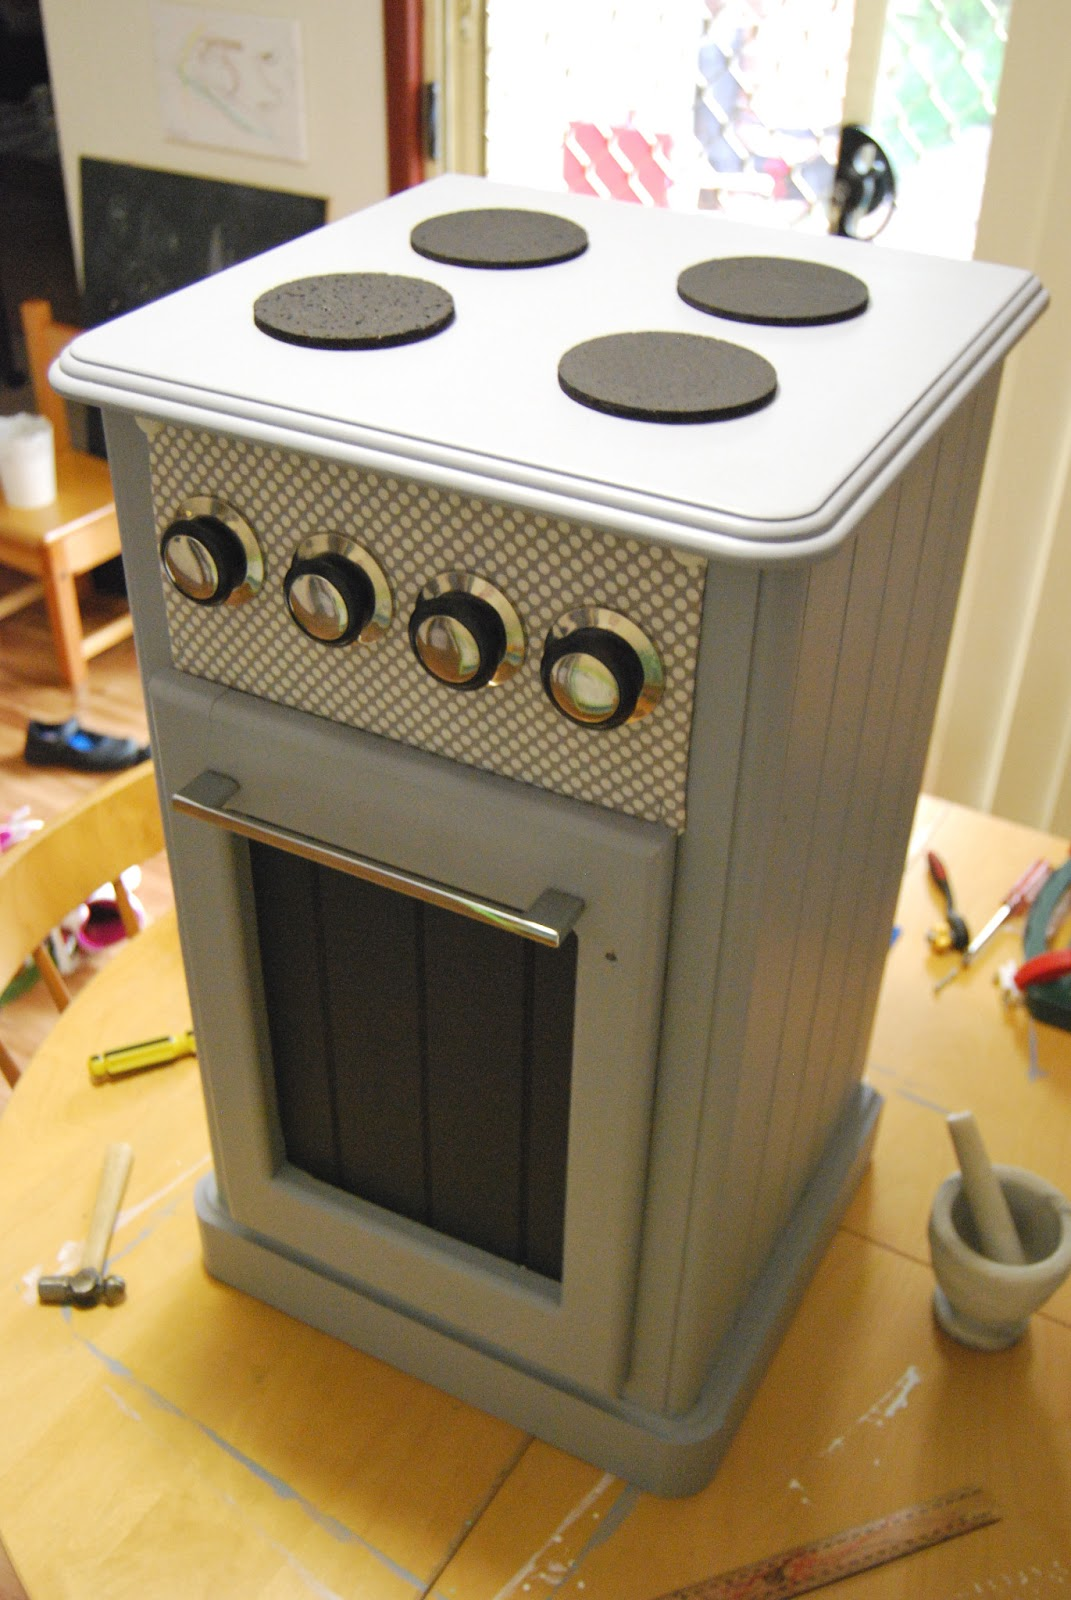 A Little Learning For Two Play Oven Stove Project